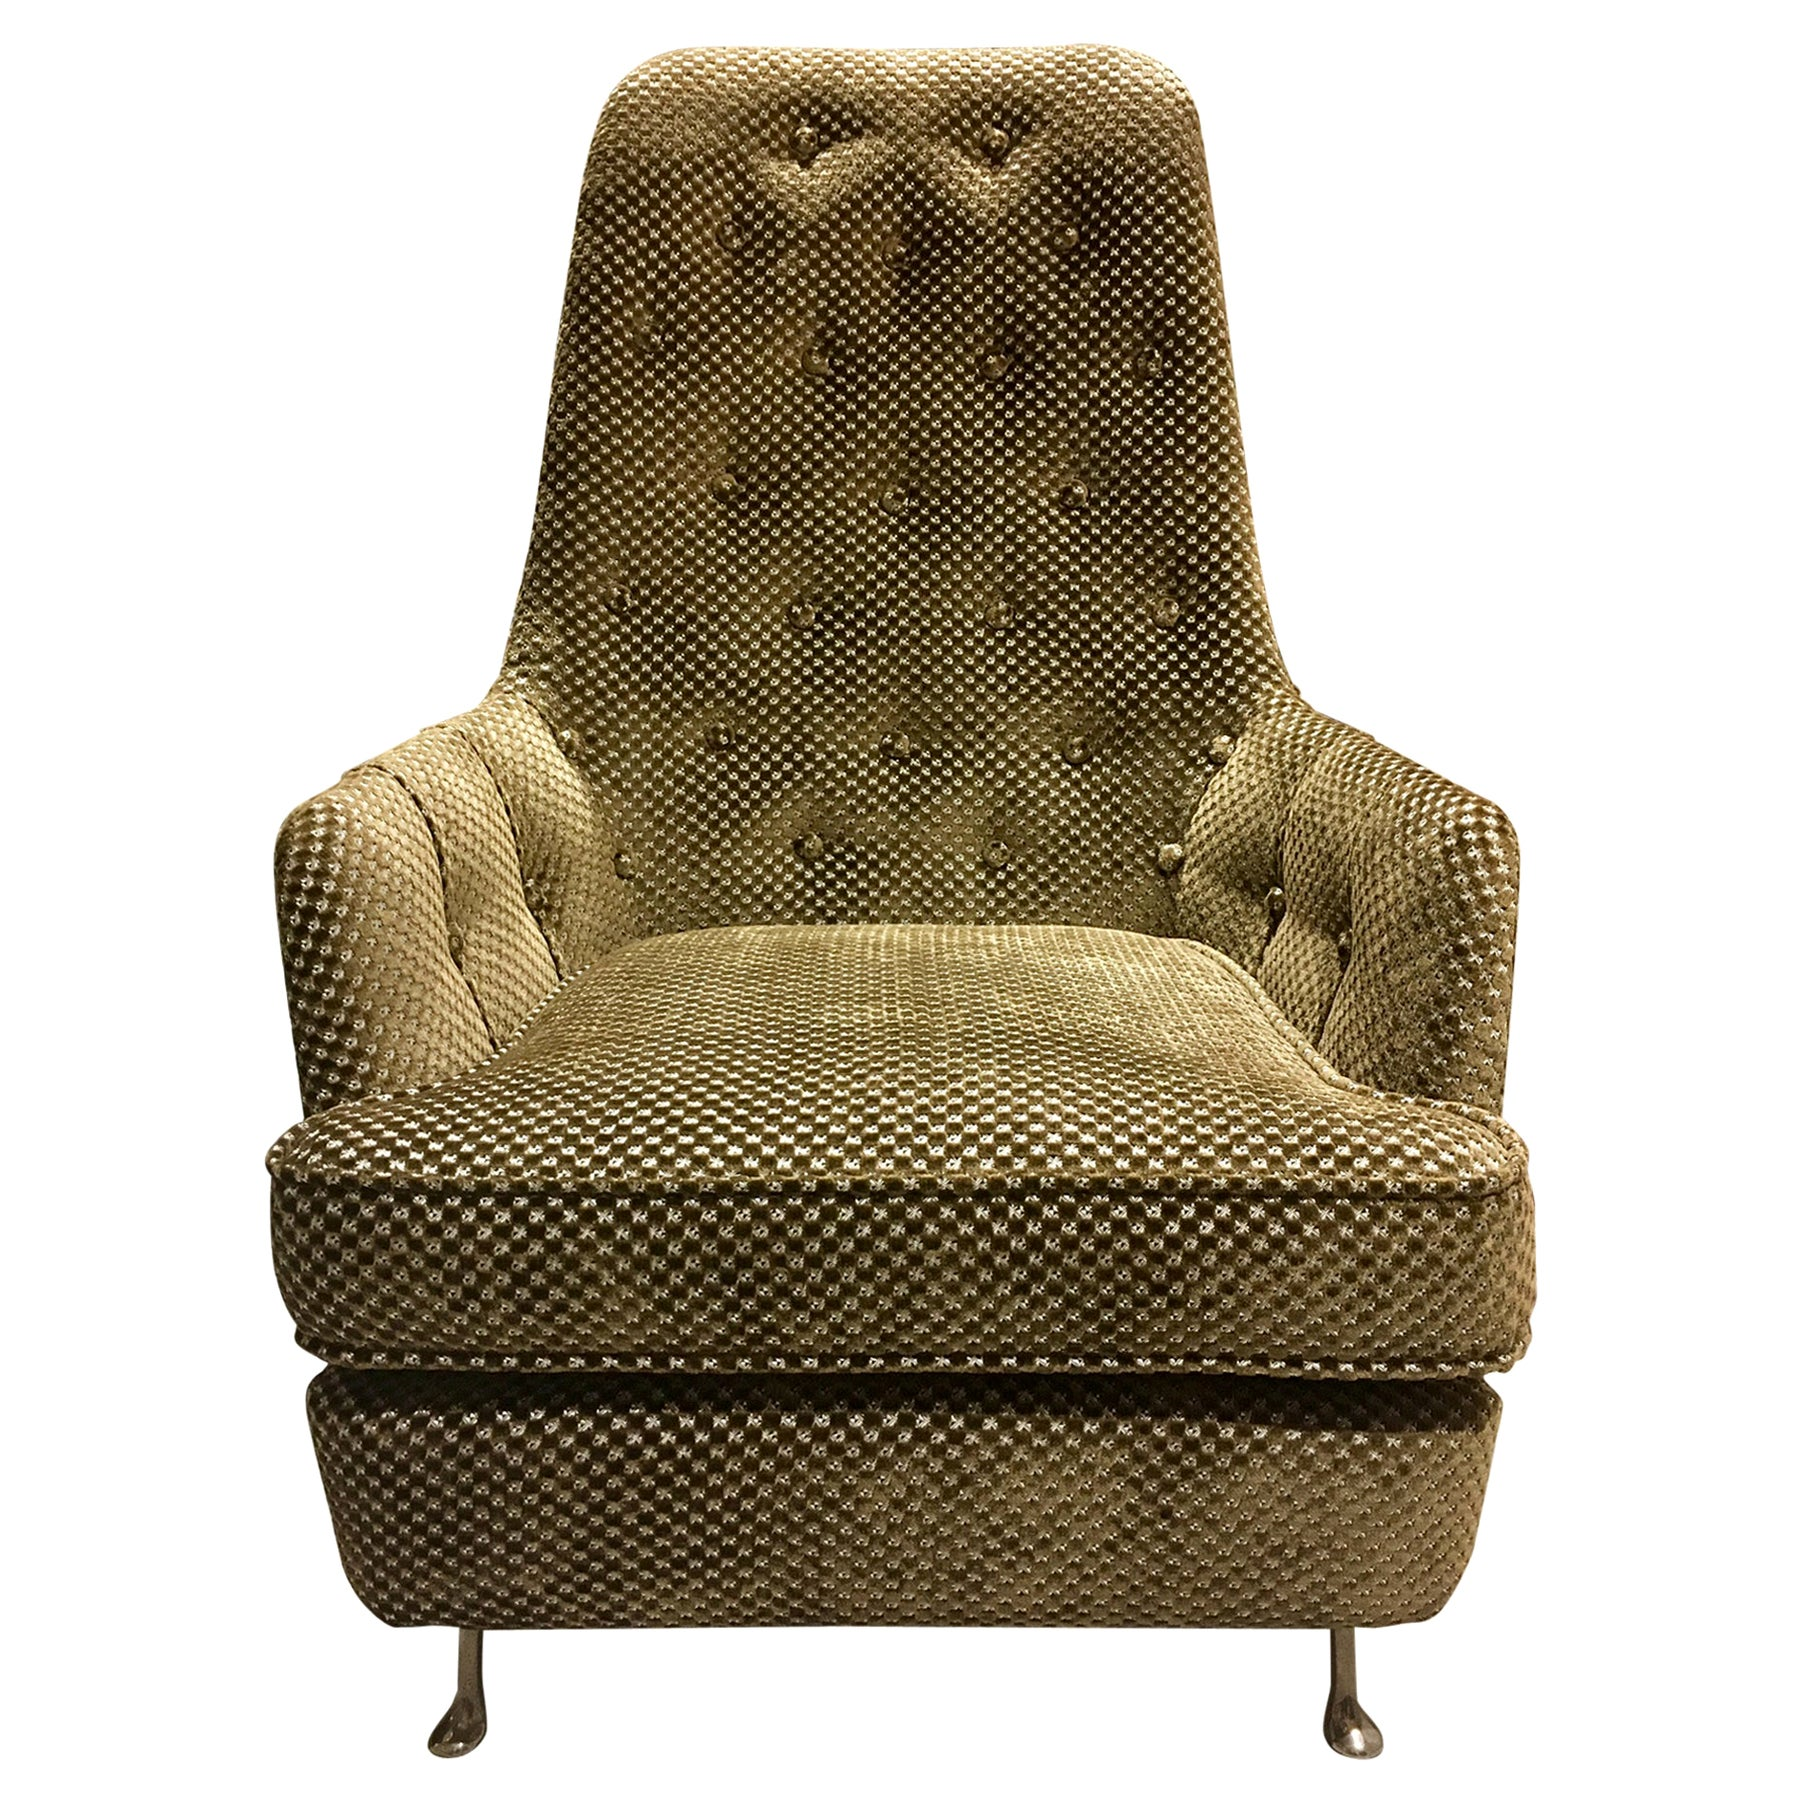 1950s Button-Tufted Armchair with Metal Feet